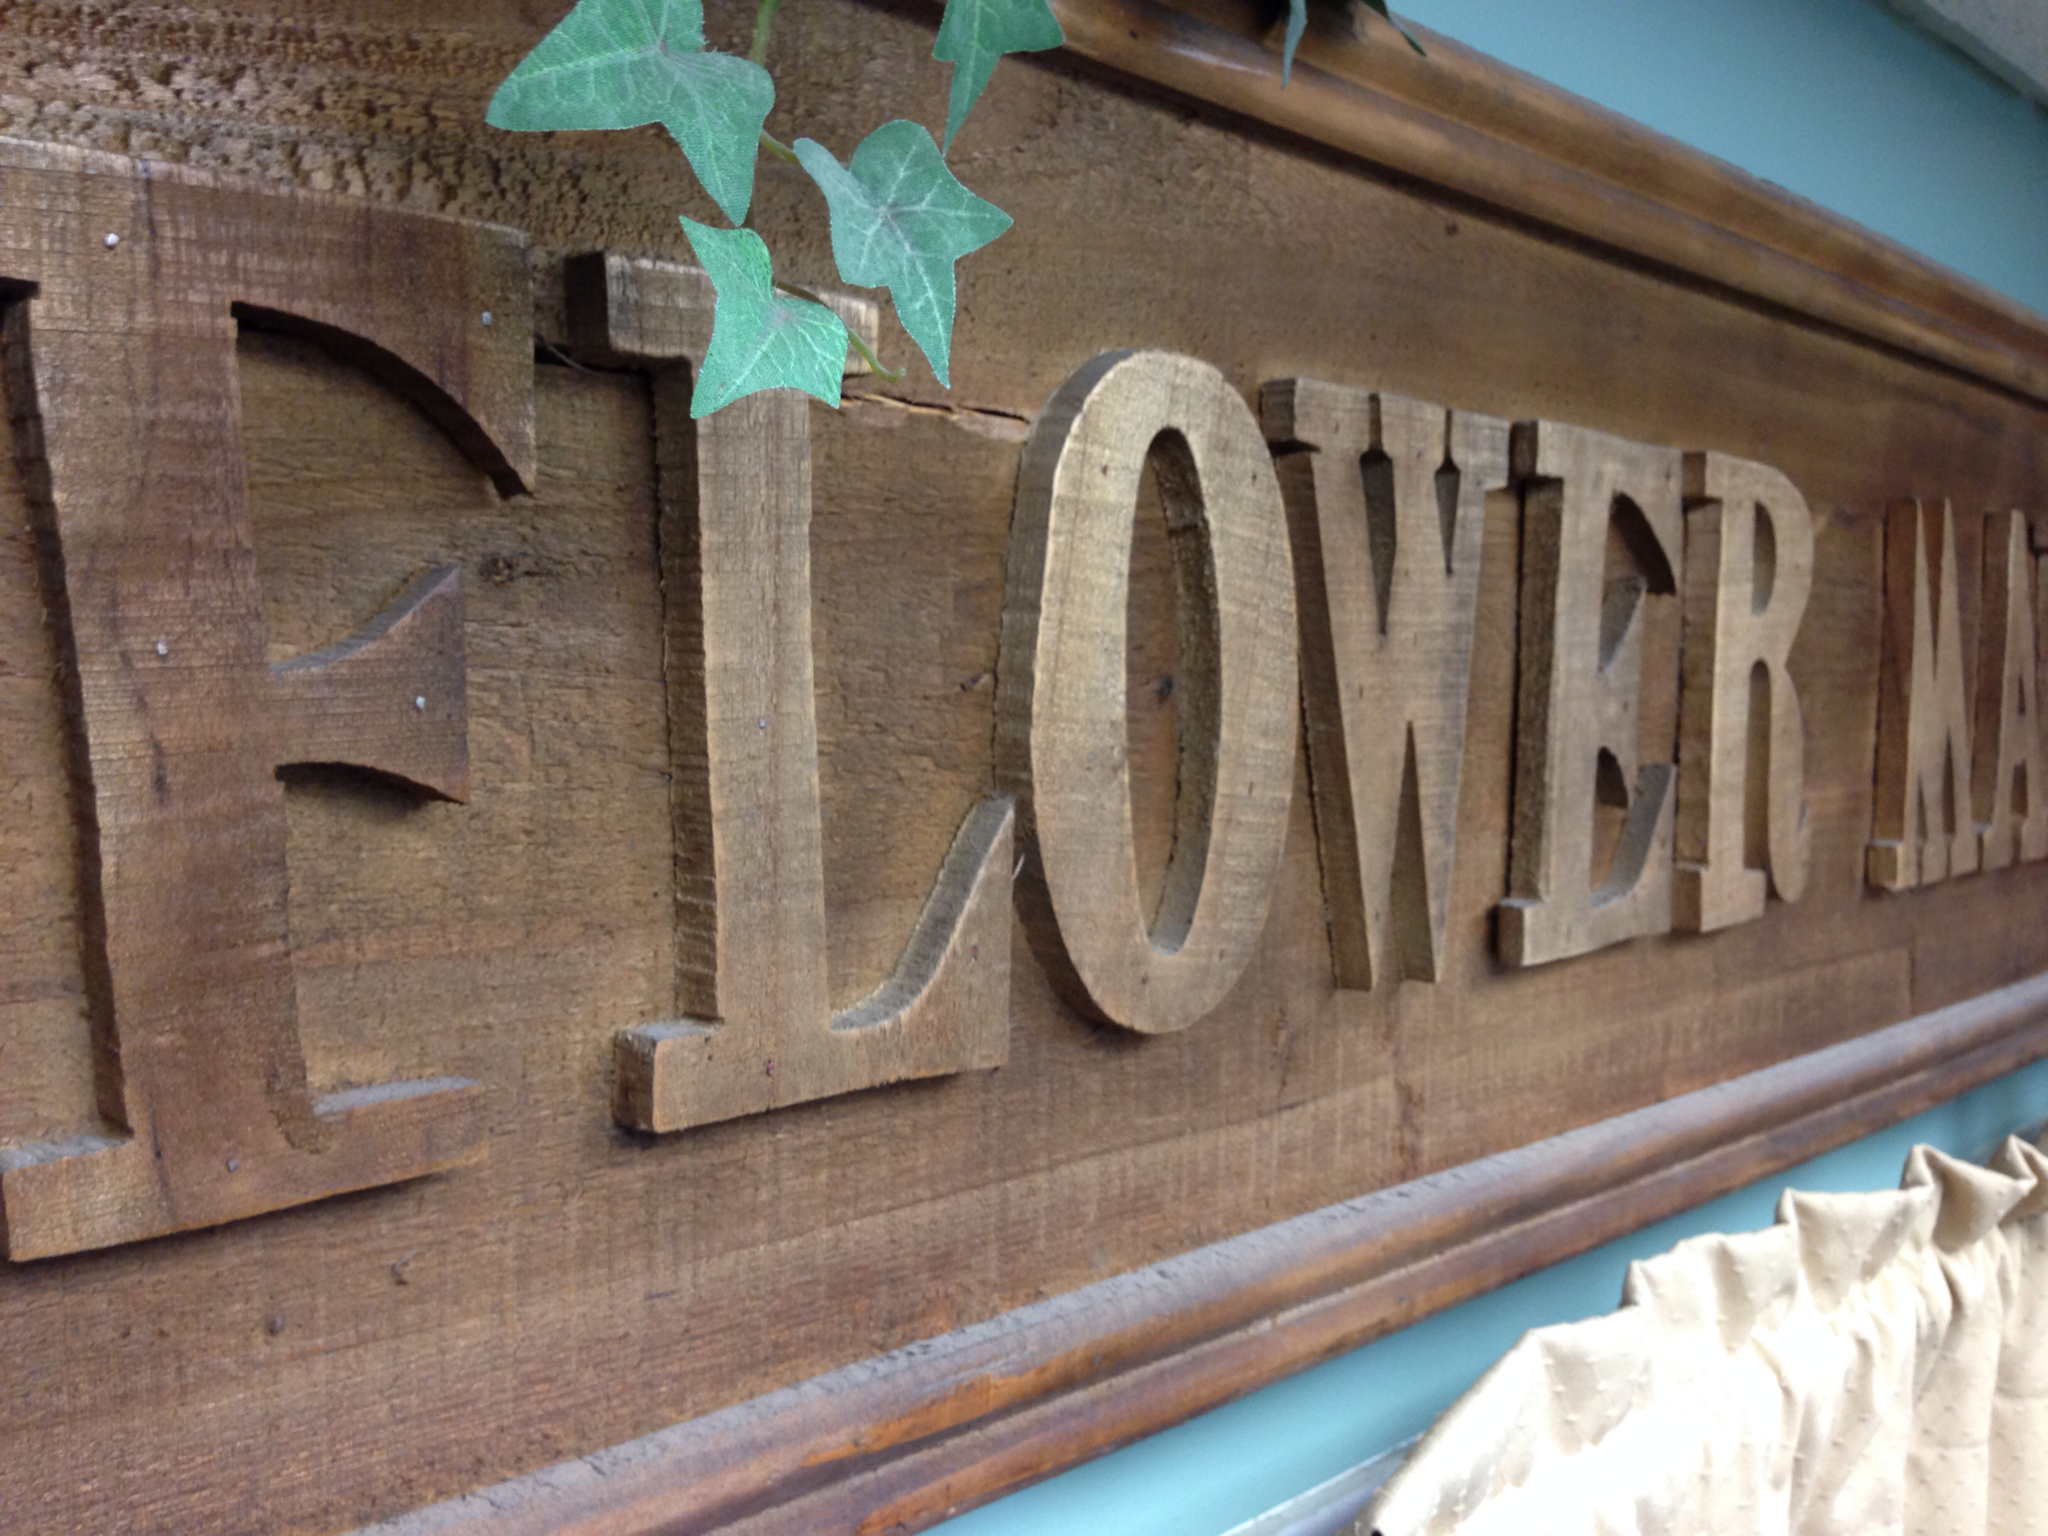 Davinci Flower Shops Ltd